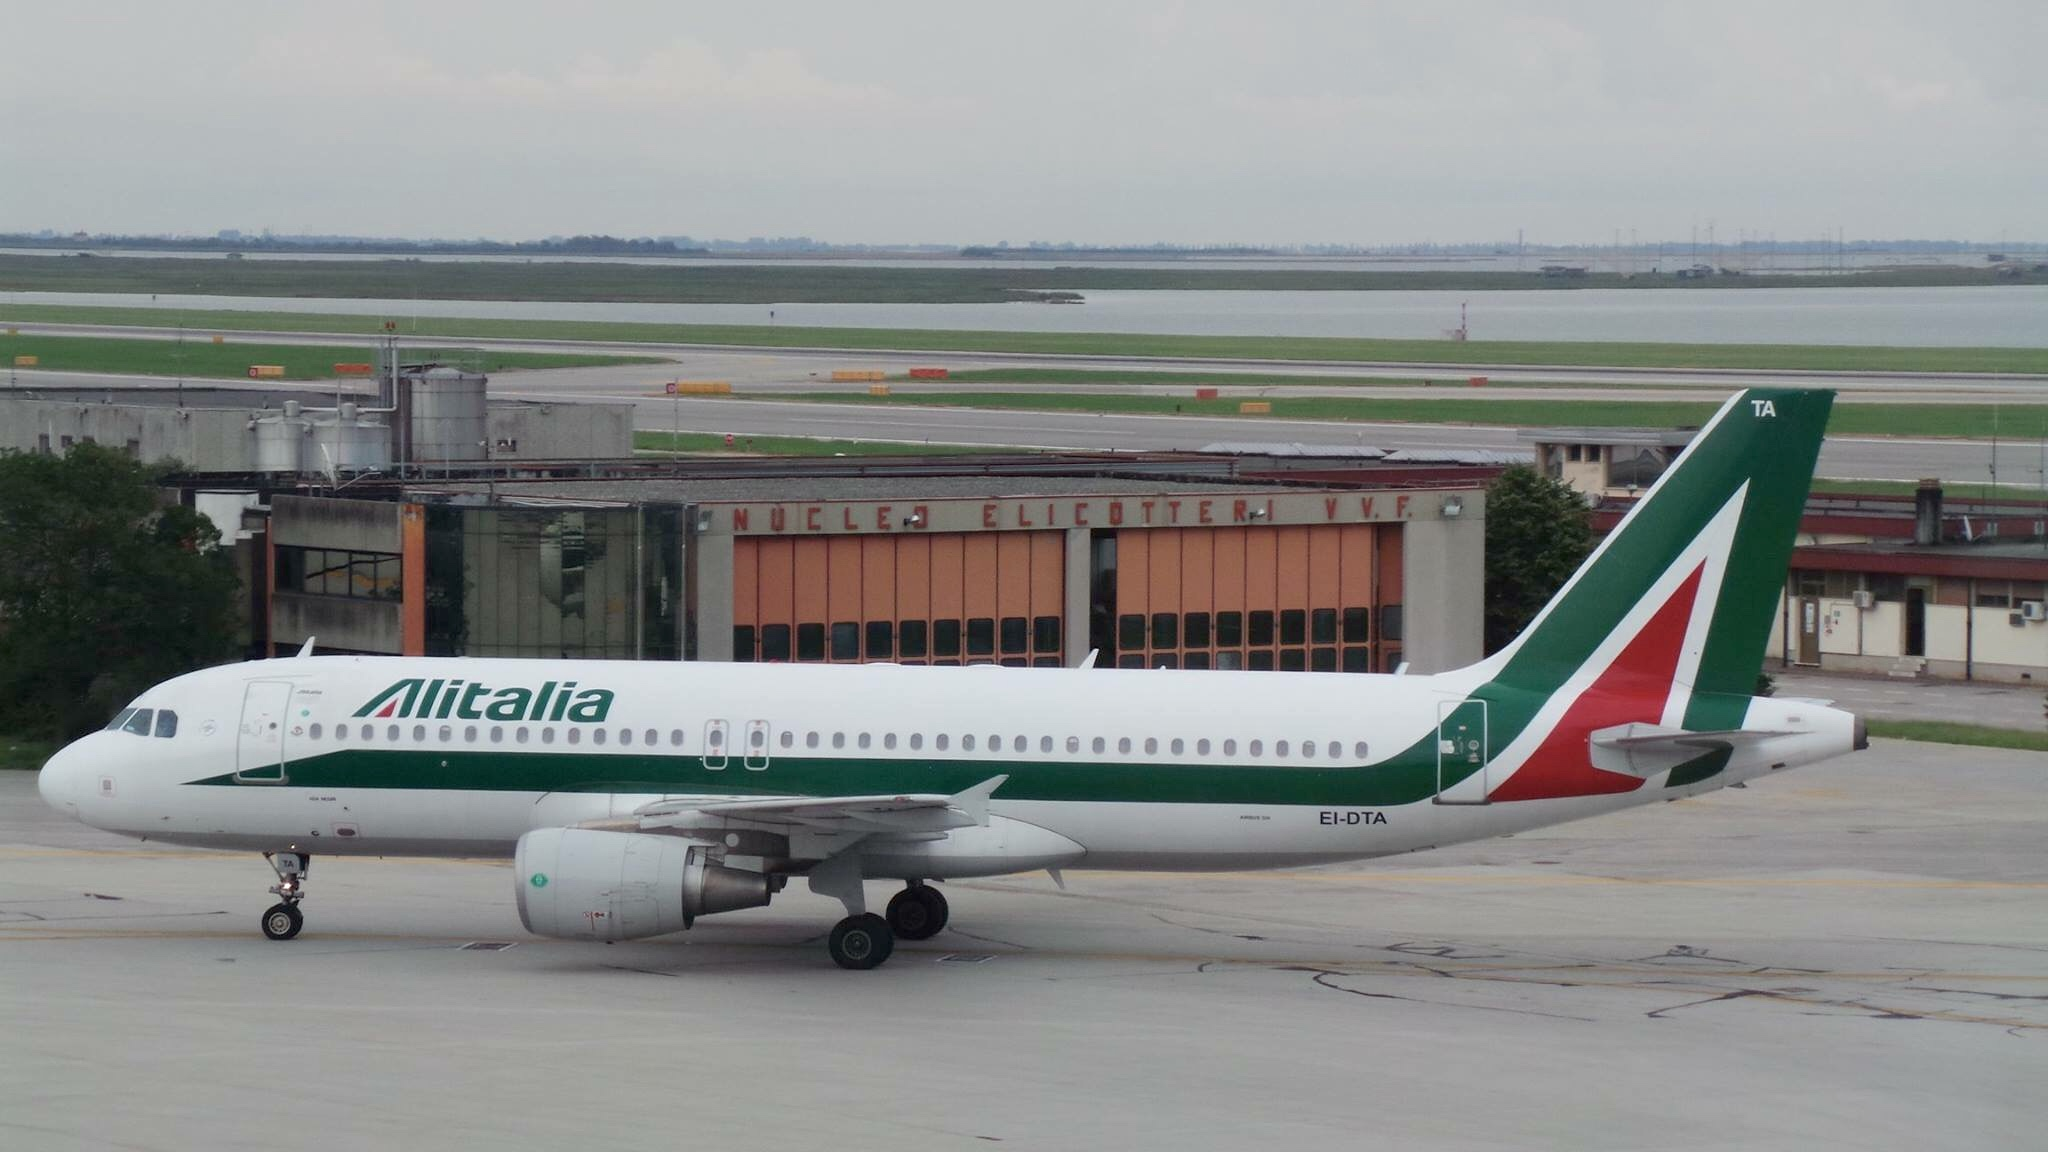 Lufthansa interested in ALITALIA